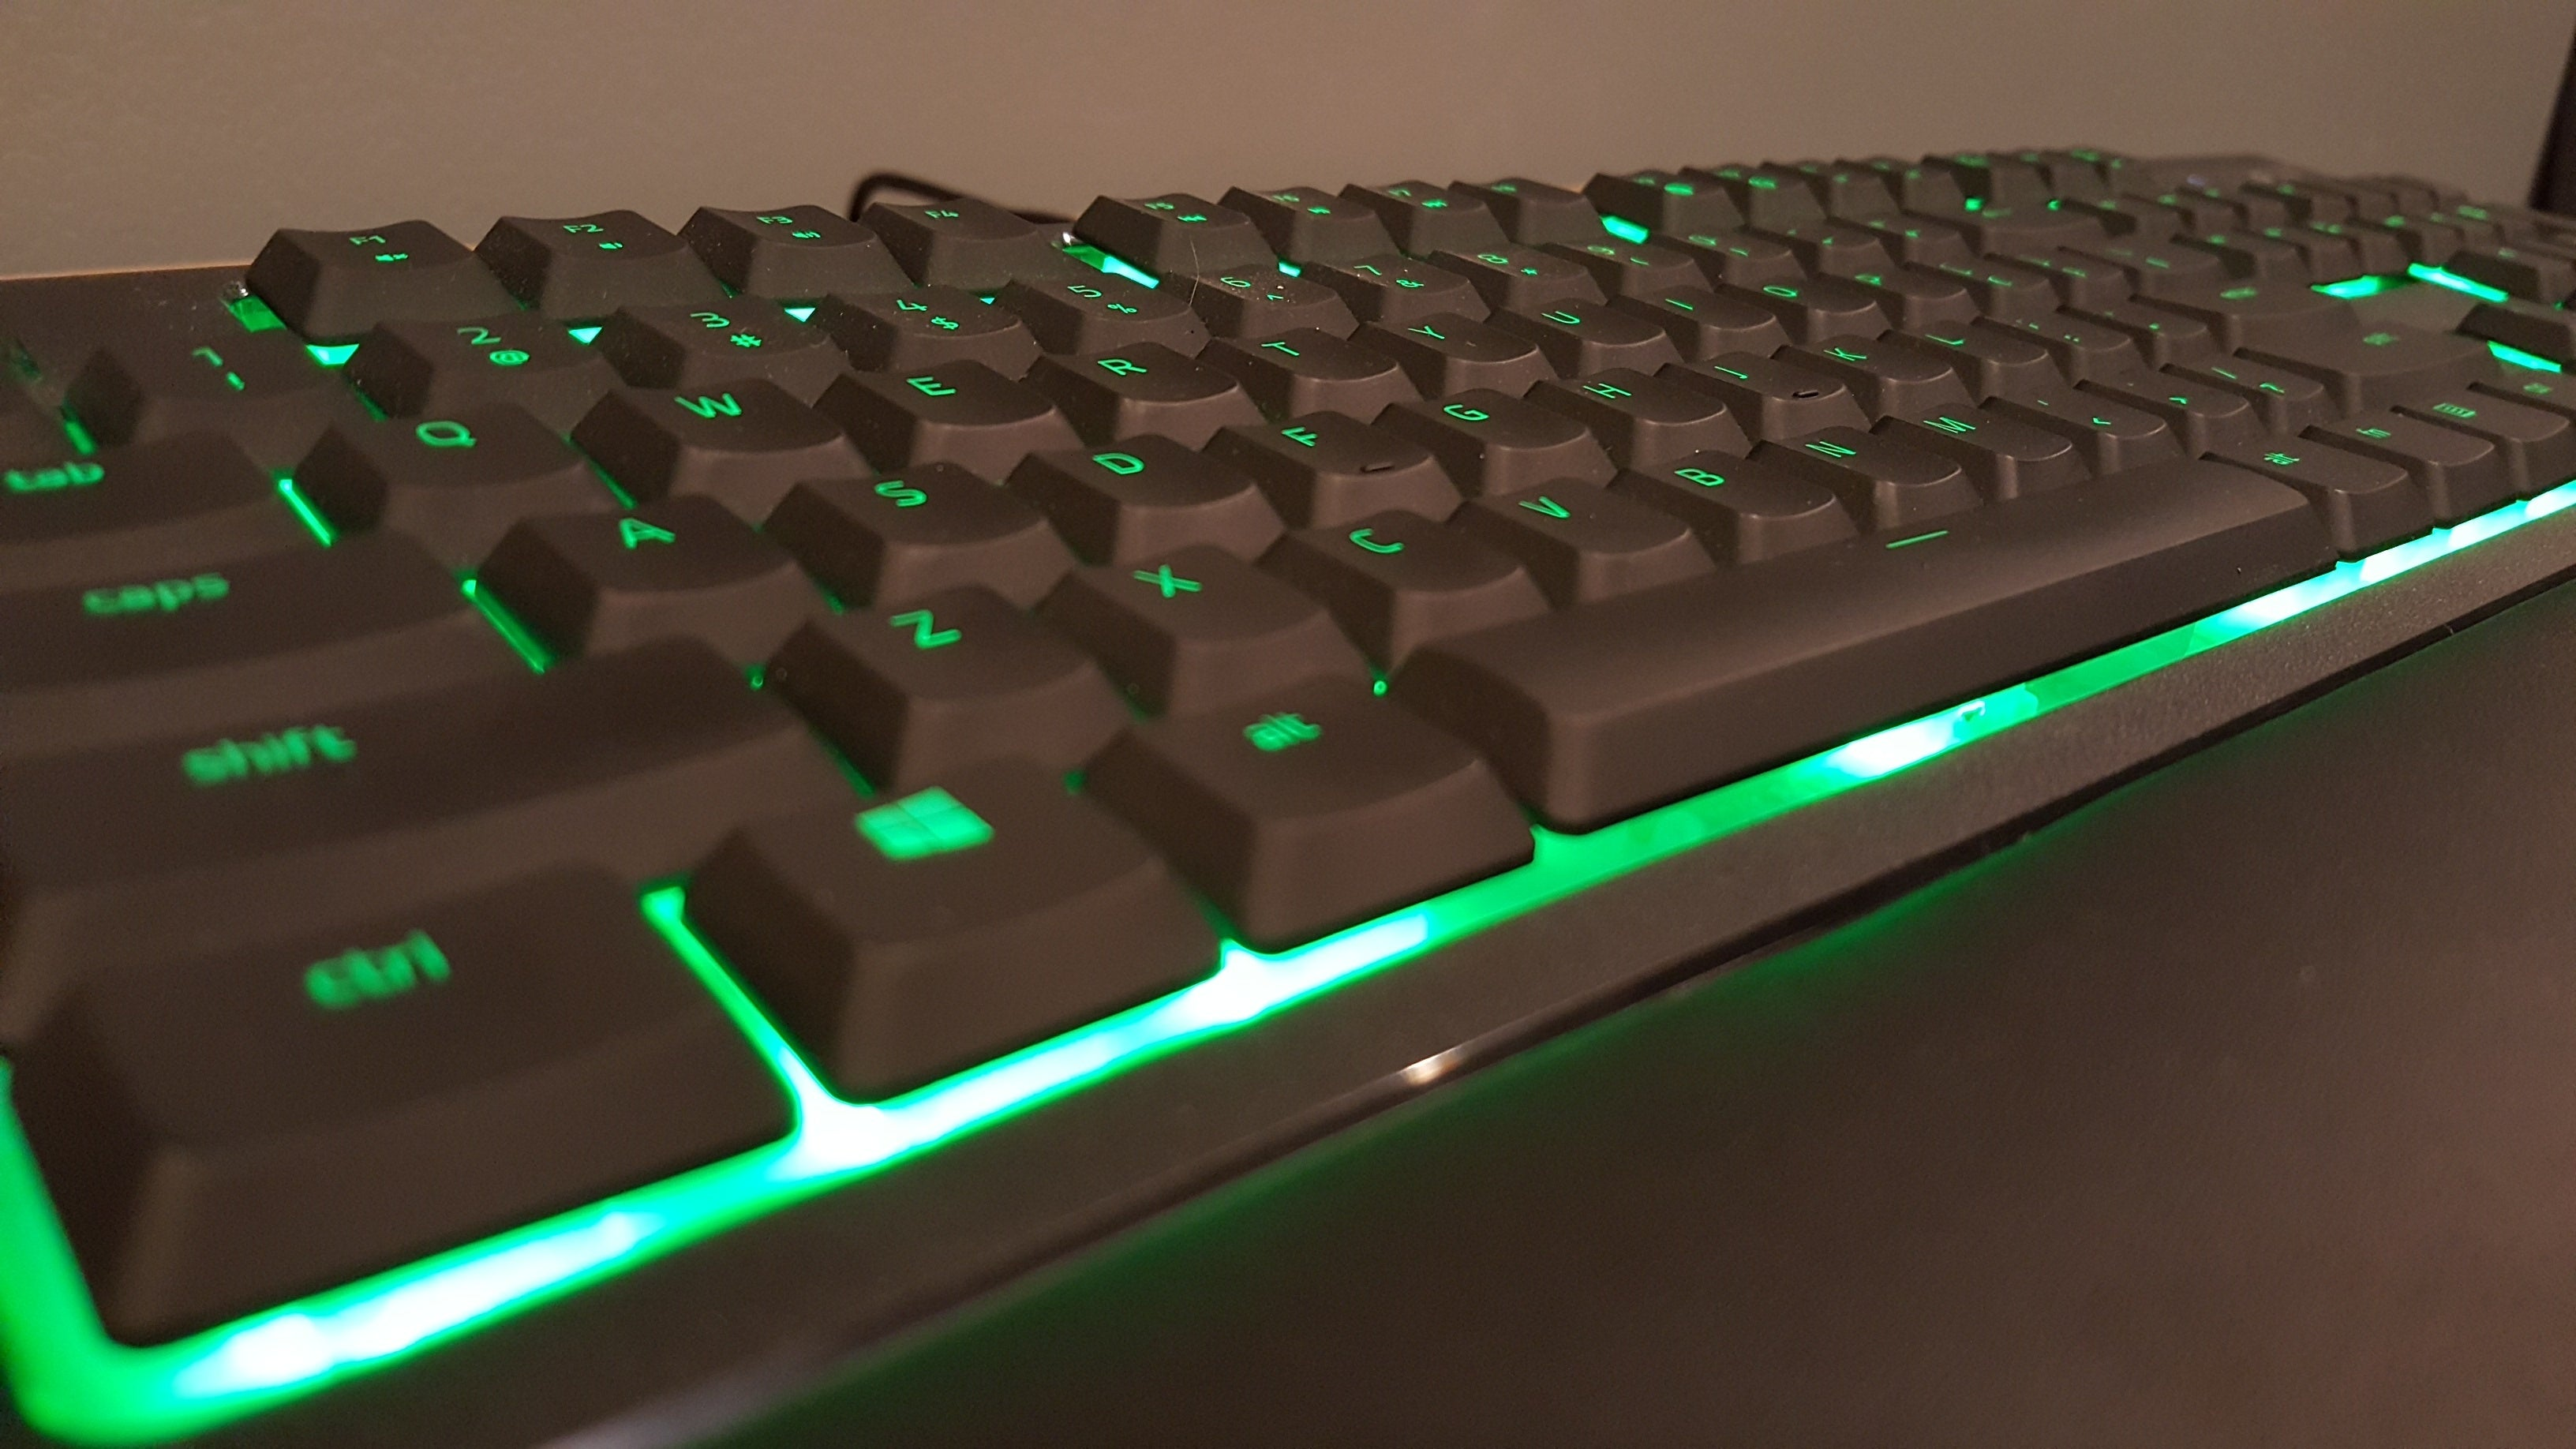 f17649b9147 Razer Ornata review: An expensive rubber-dome keyboard that comes with a  mechanical click